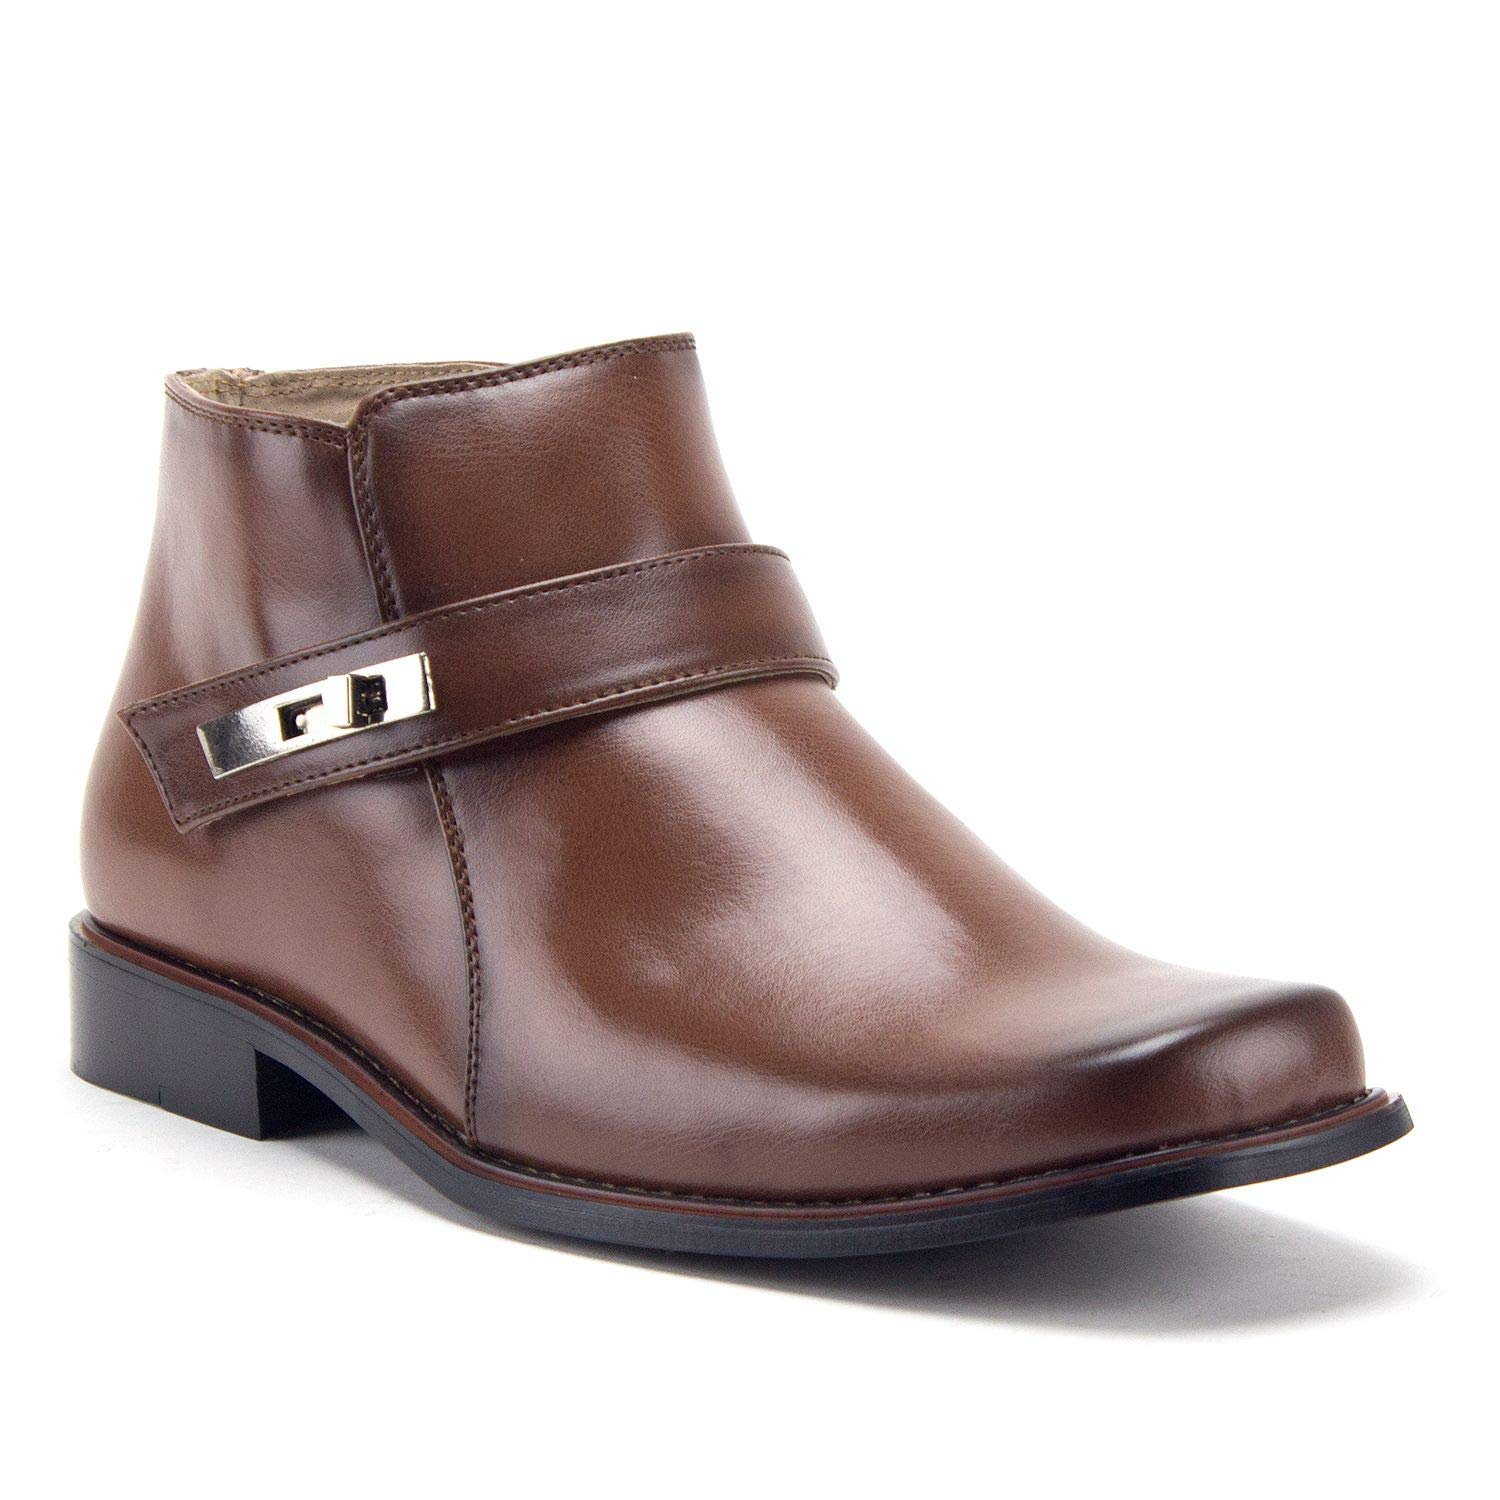 90ae9fbd0d821 Jazame Men's Ankle High Square Toe Casual Chelsea Dress Boots